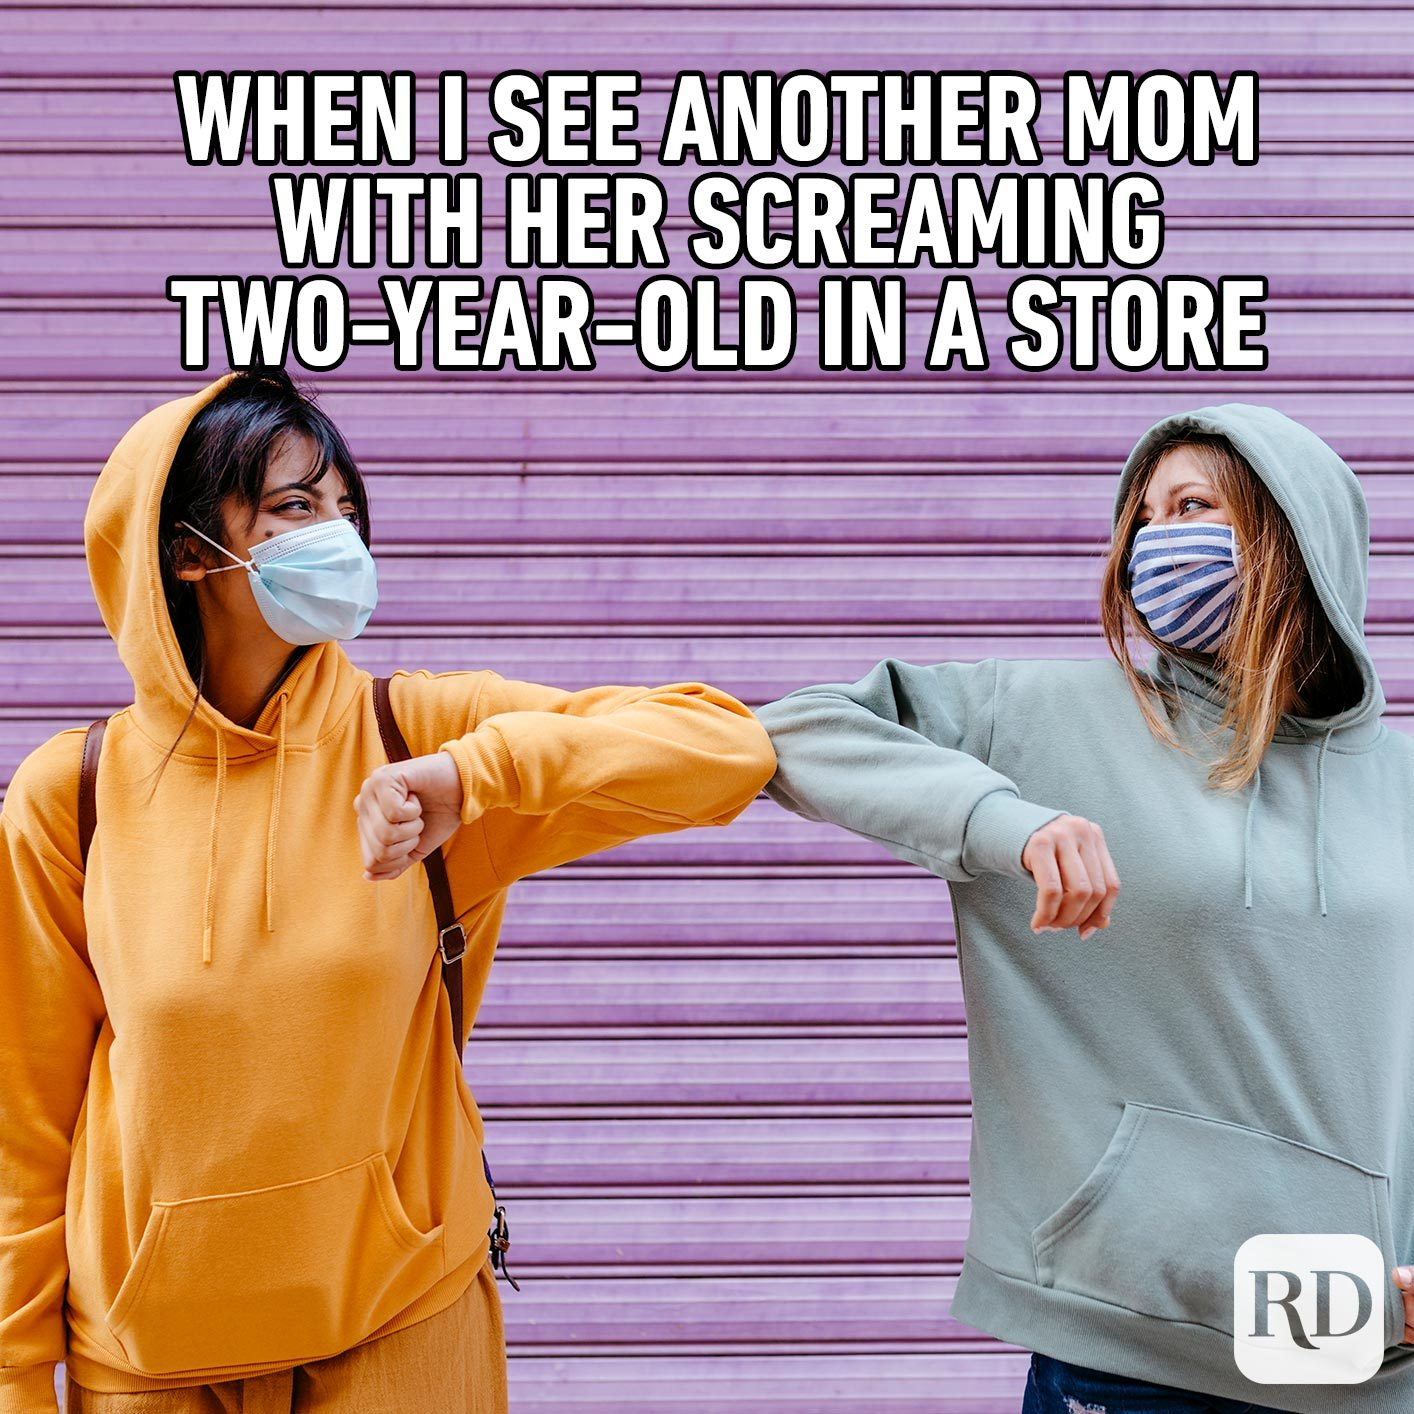 Two women touching elbows. MEME TEXT: When I see another mom with her screaming two-year-old in a store